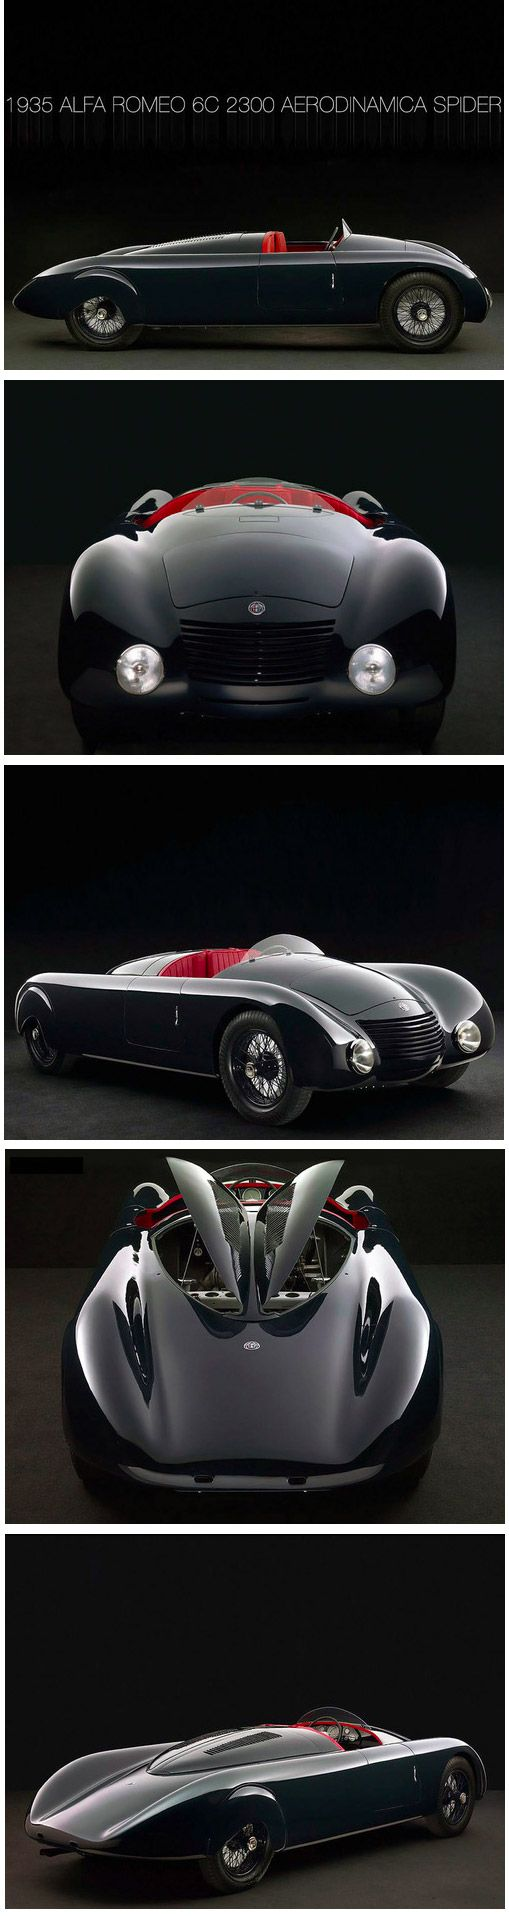 145 best Cars images on Pinterest | Old school cars, Vintage cars ...